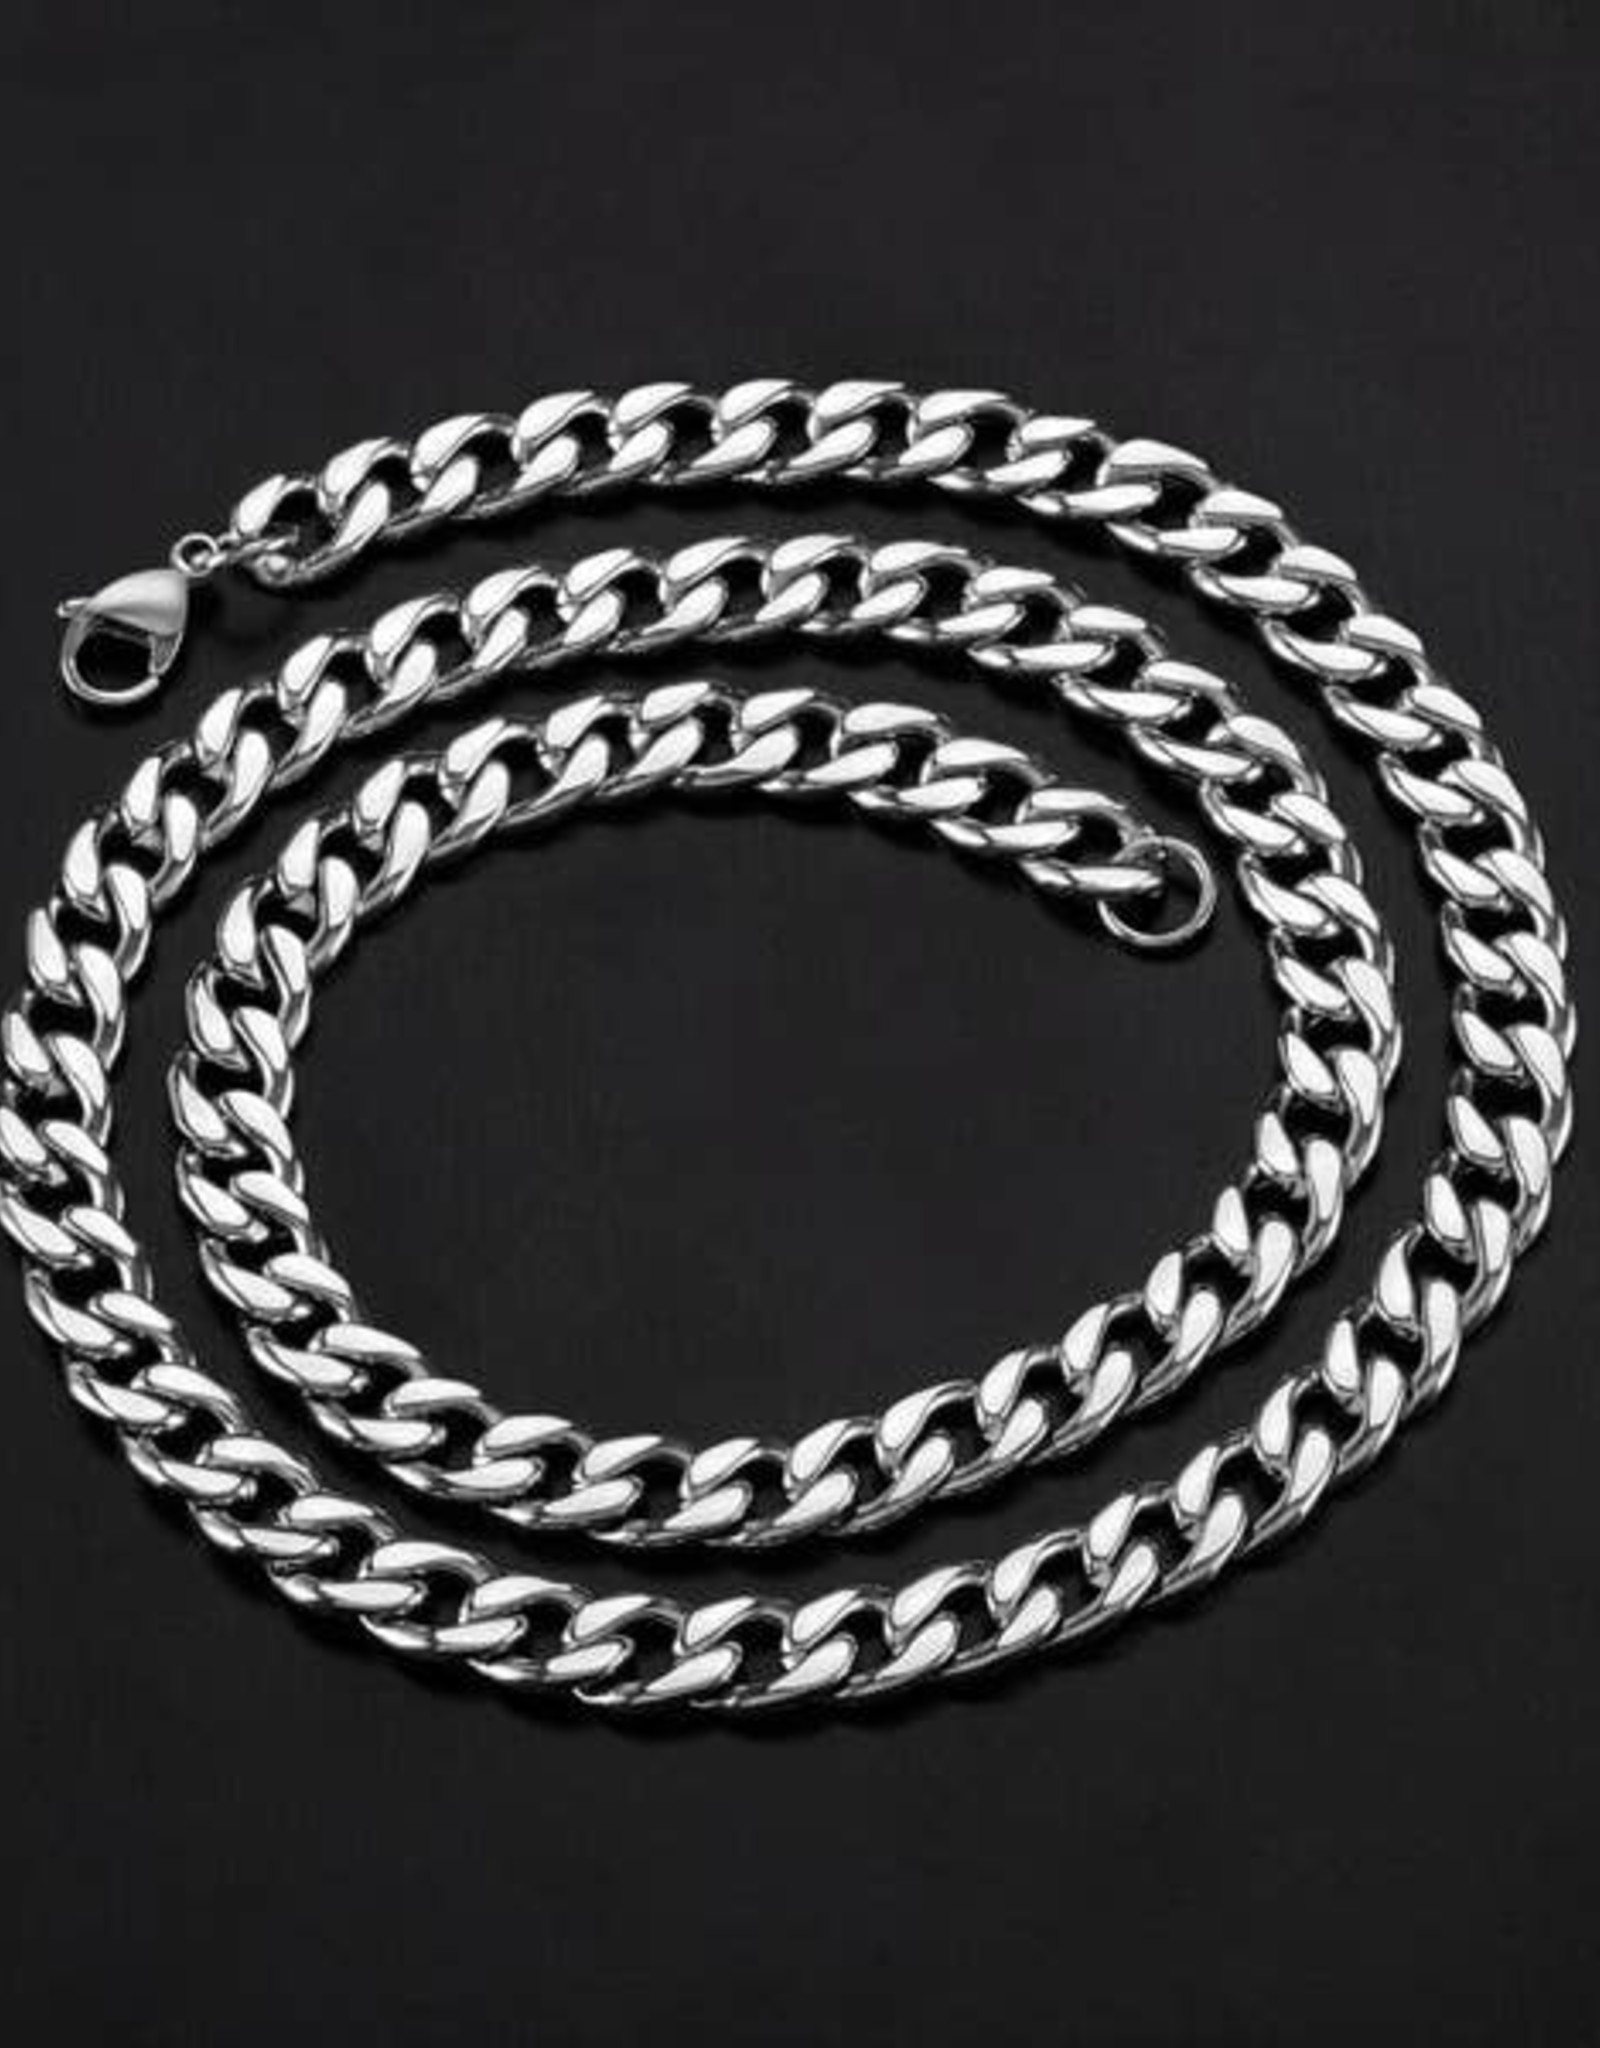 NECKLACE-CRUCIBLE MEN'S CURB STAINLESS STEEL